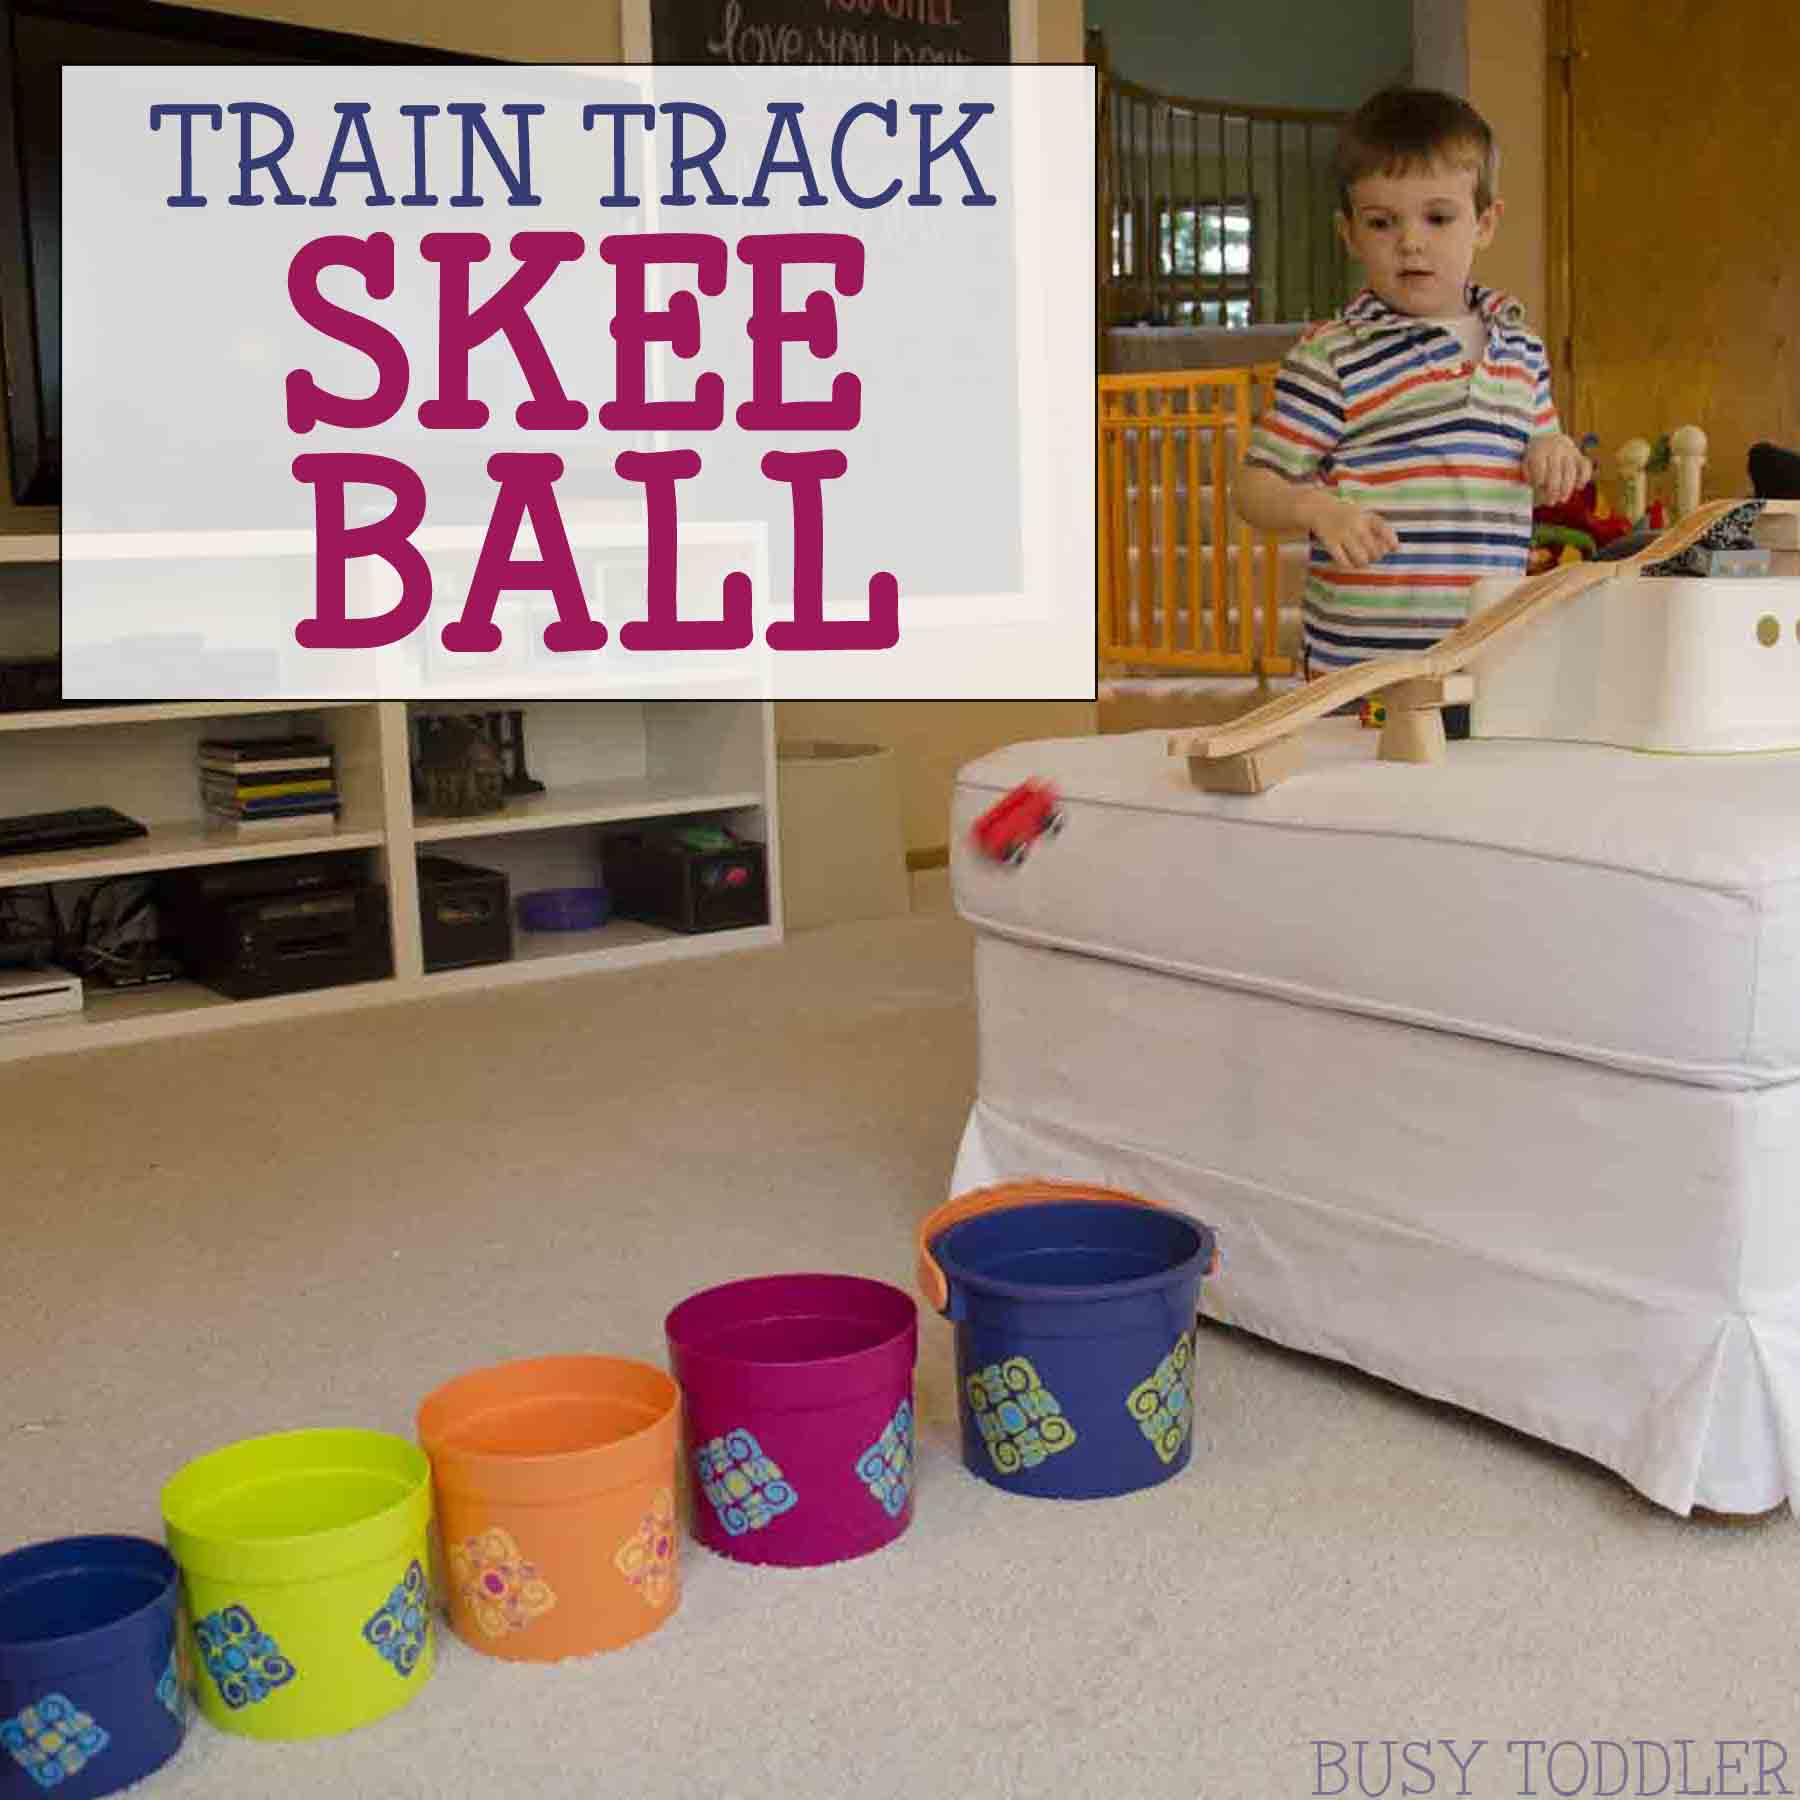 Train Track Skee Ball